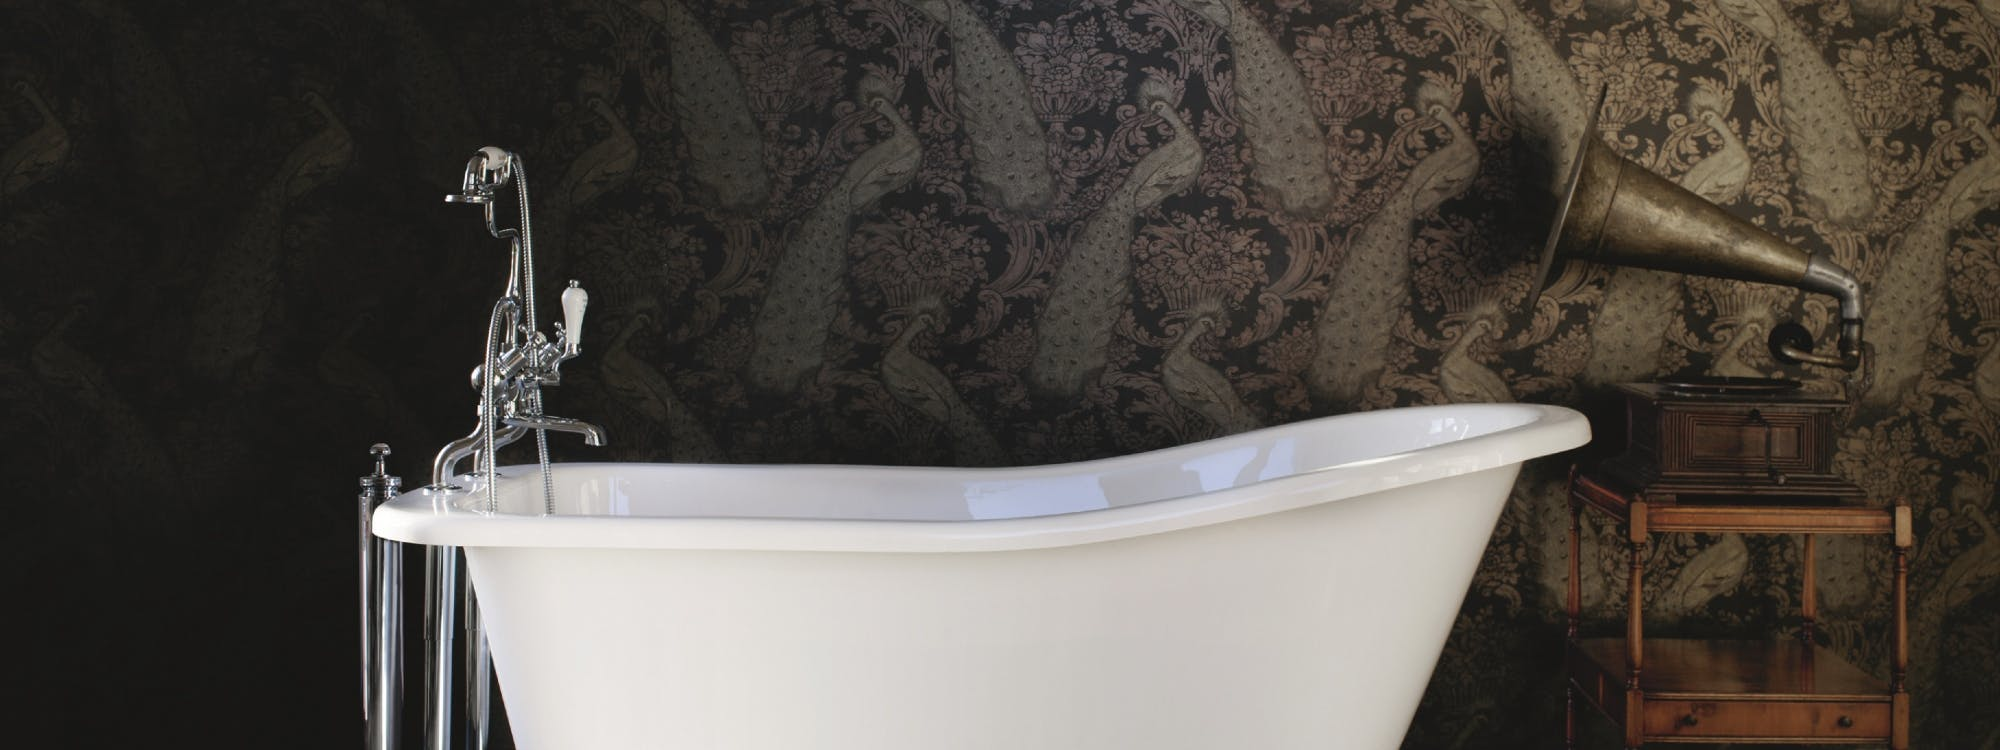 traditional bathrooms - designed, supplied & installed